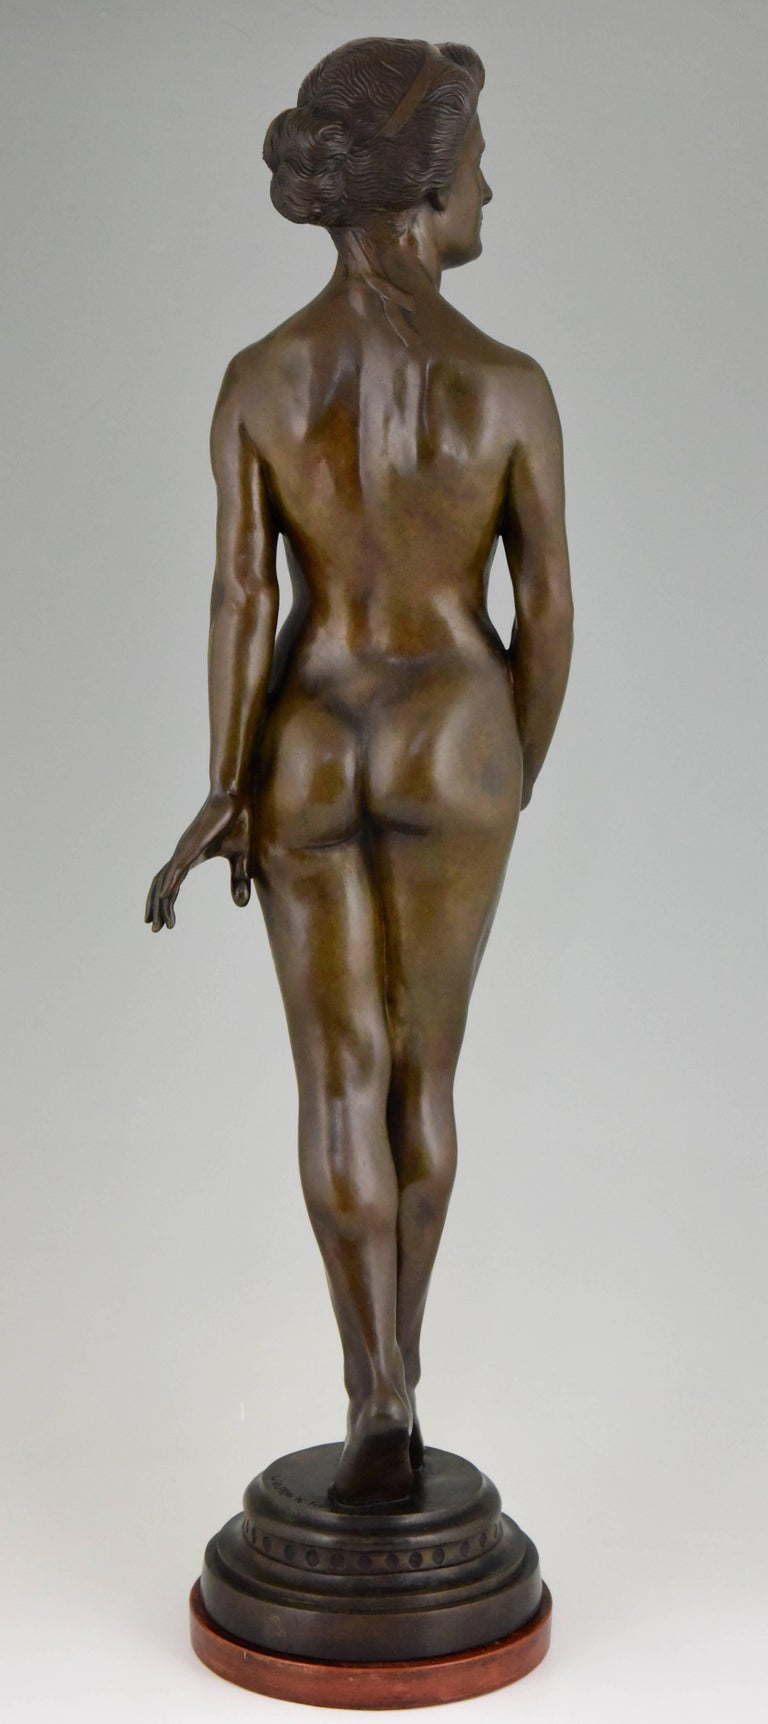 Art Deco Bronze Standing Nude by Wilhelm Oskar Prack, 1930 In Good Condition For Sale In Antwerp, BE